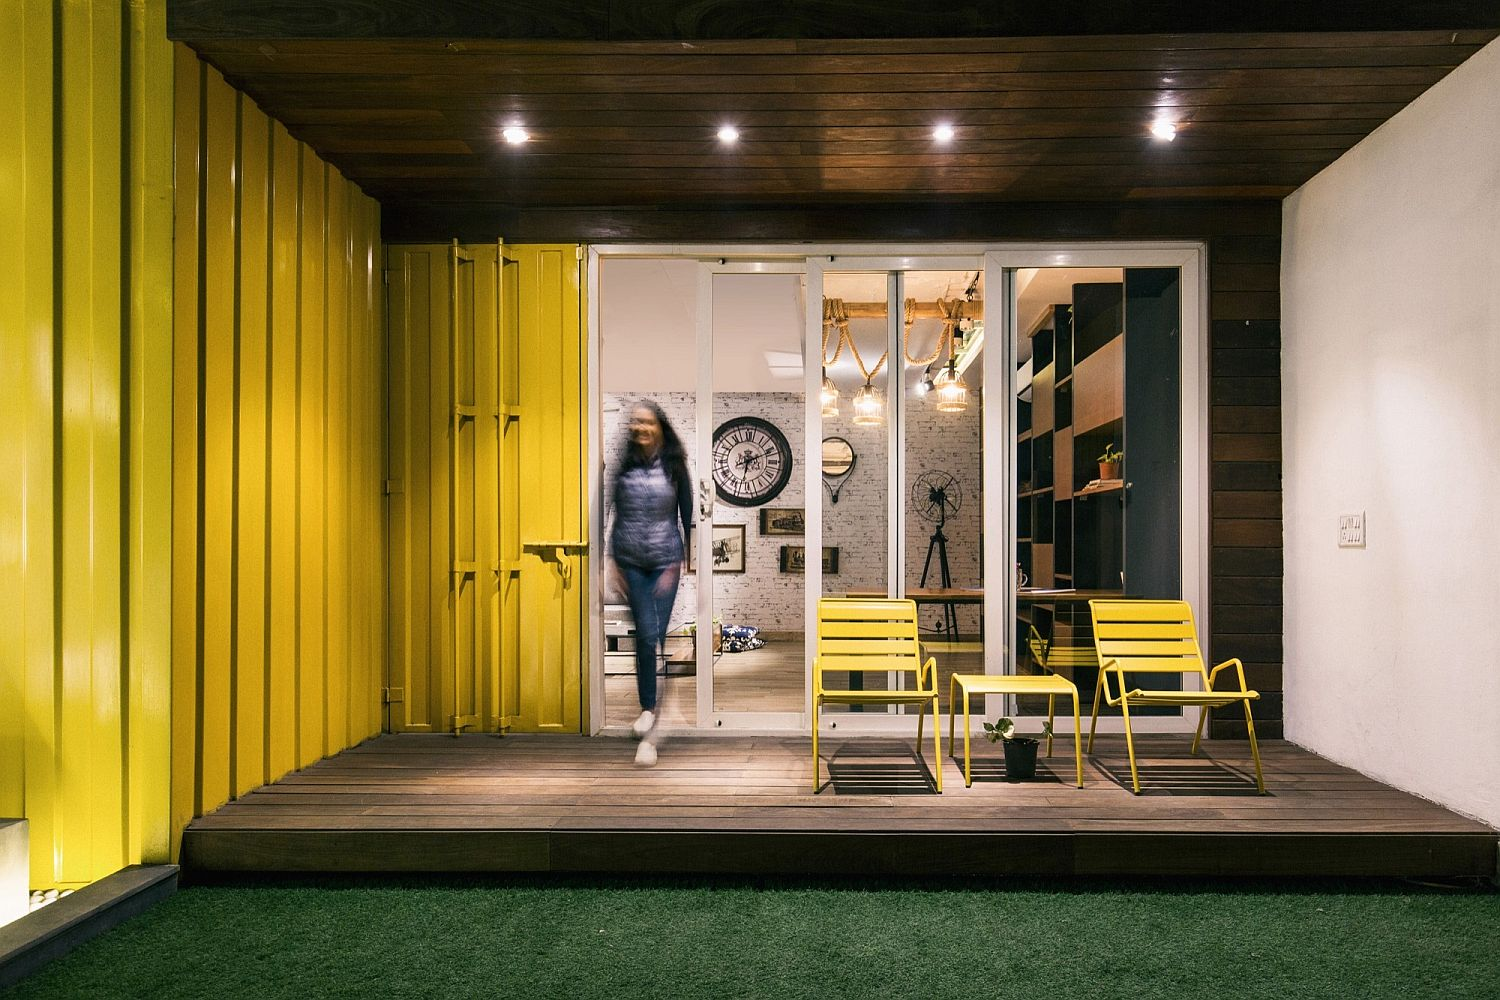 Lighting and yellow hue enlivens life on the terrace studio